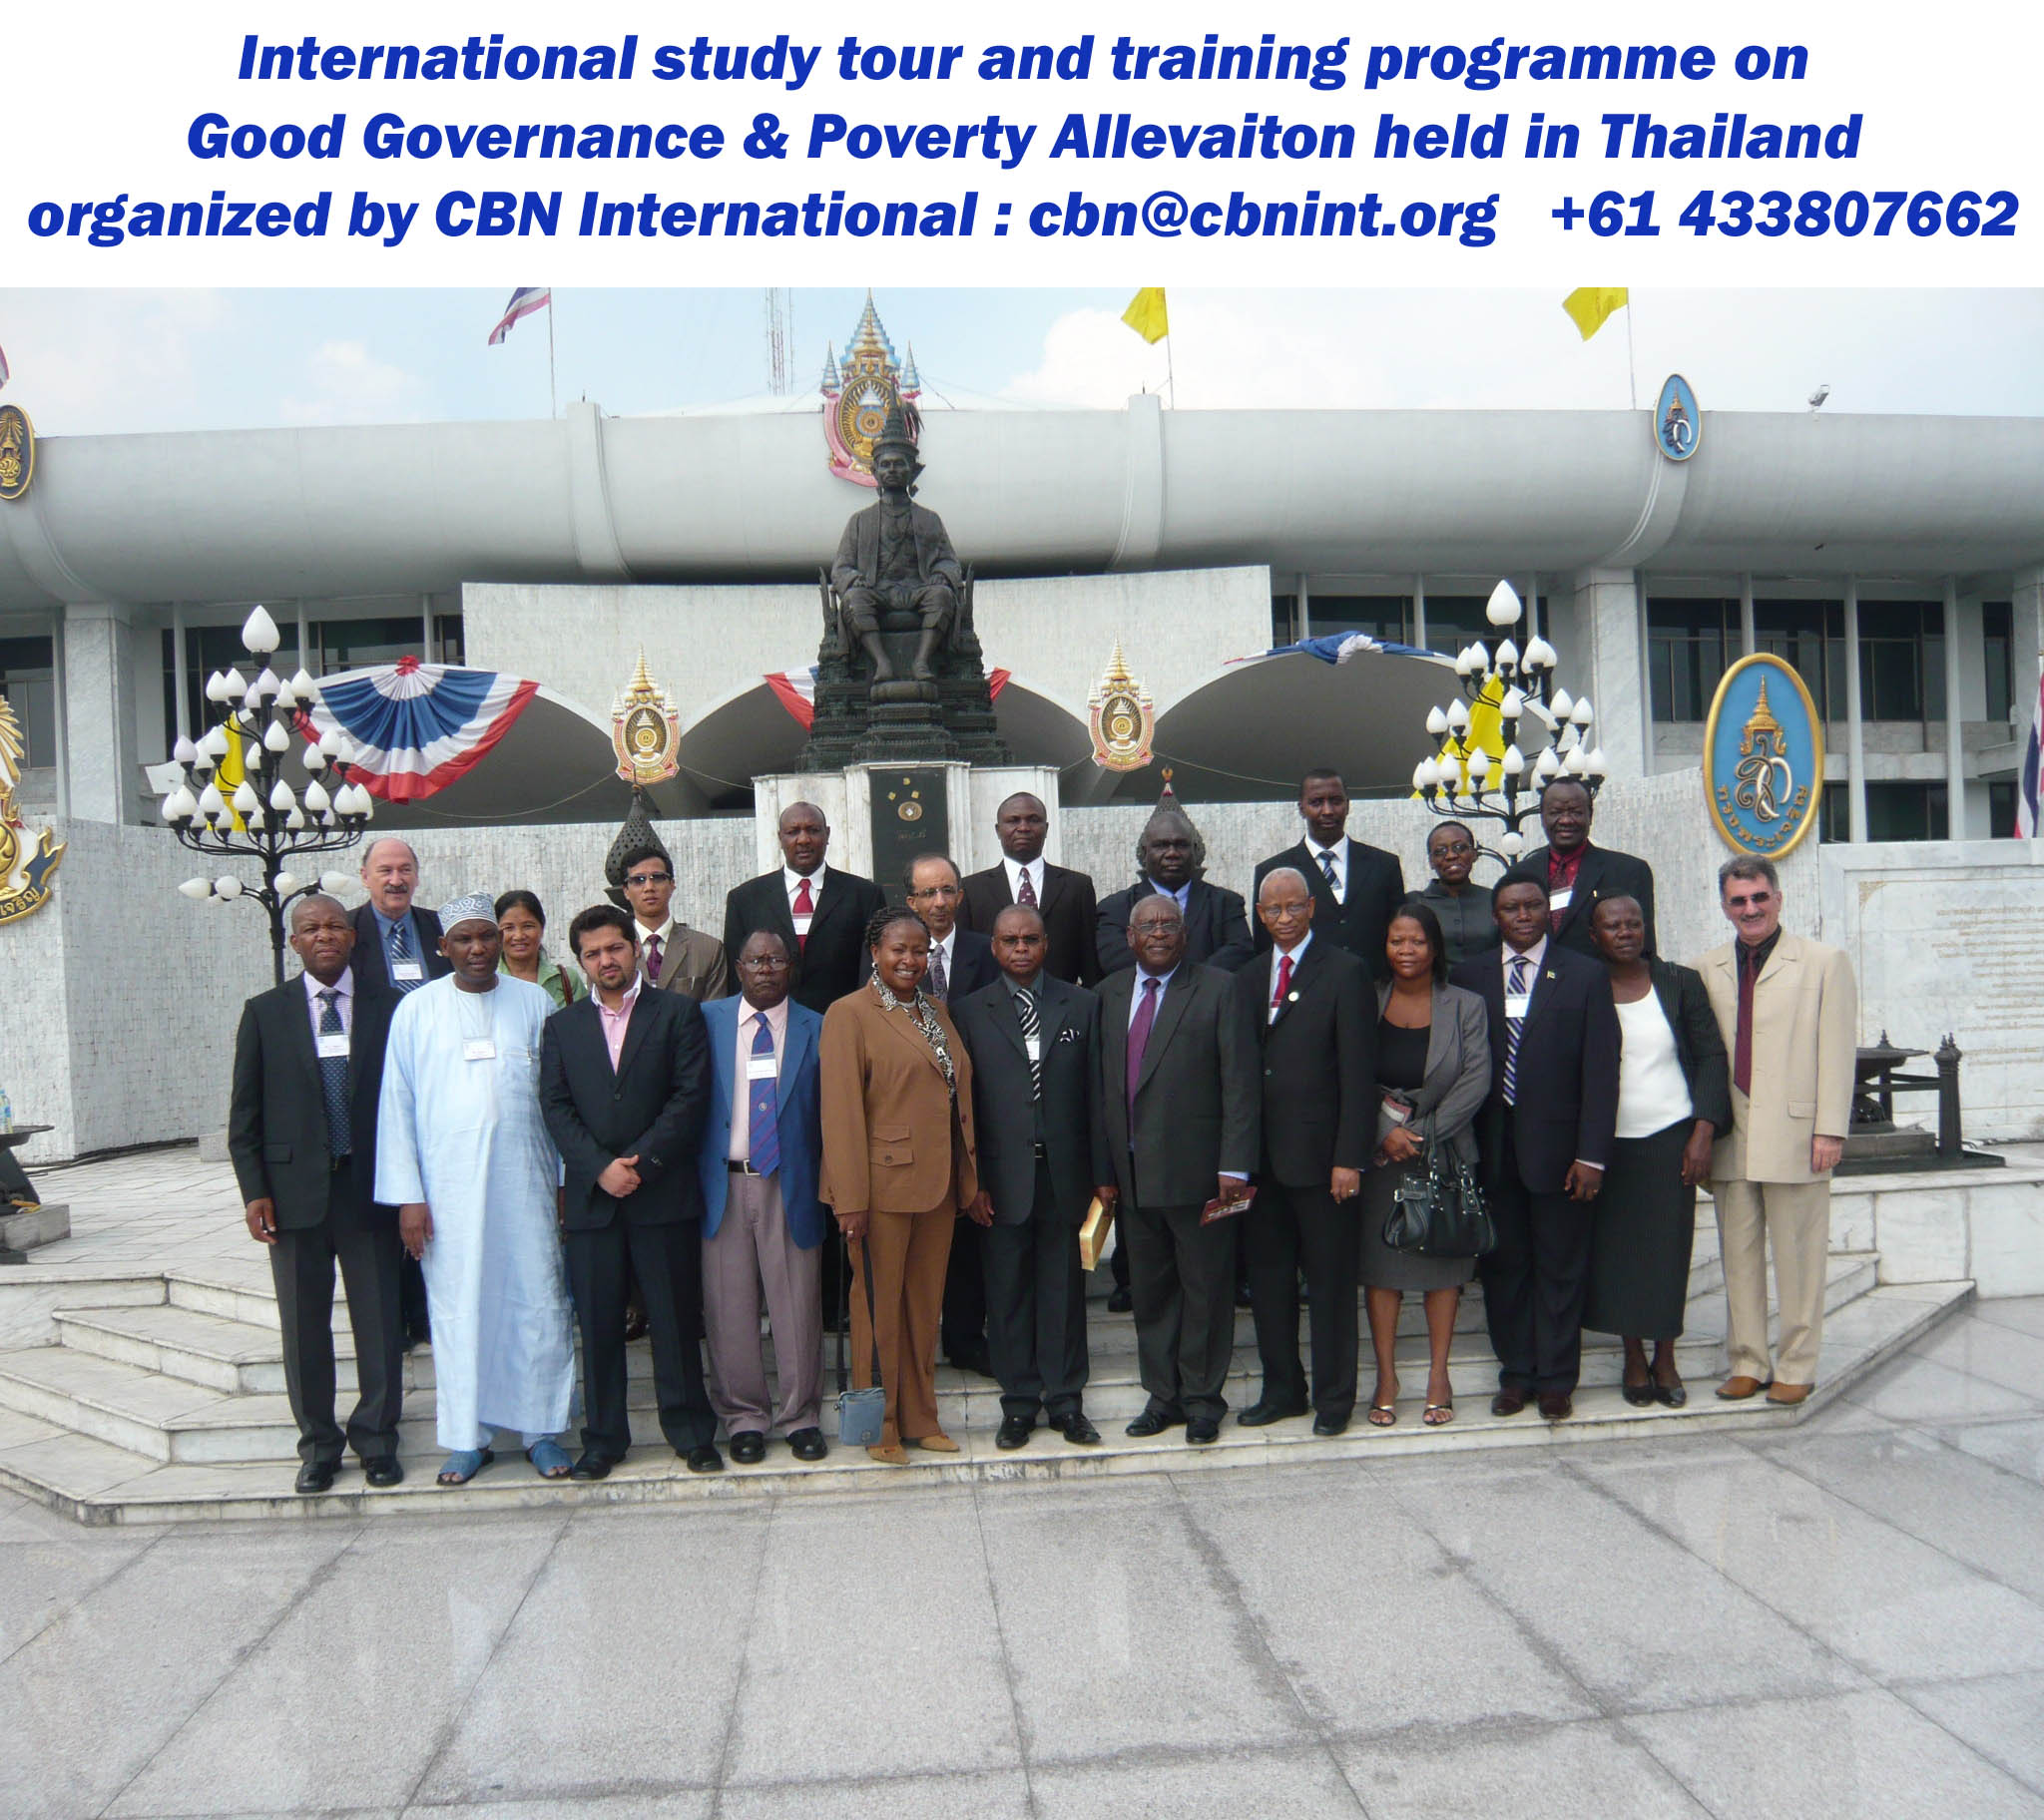 A group of distinguished participants from Kenya, South Africa, Nigeria, Afghanistan, Kuwait, Tanzania, Malawi and Papua New Guinea during a CBN international training and study tour workshop held in Bangkok; short course on Good Governance series.